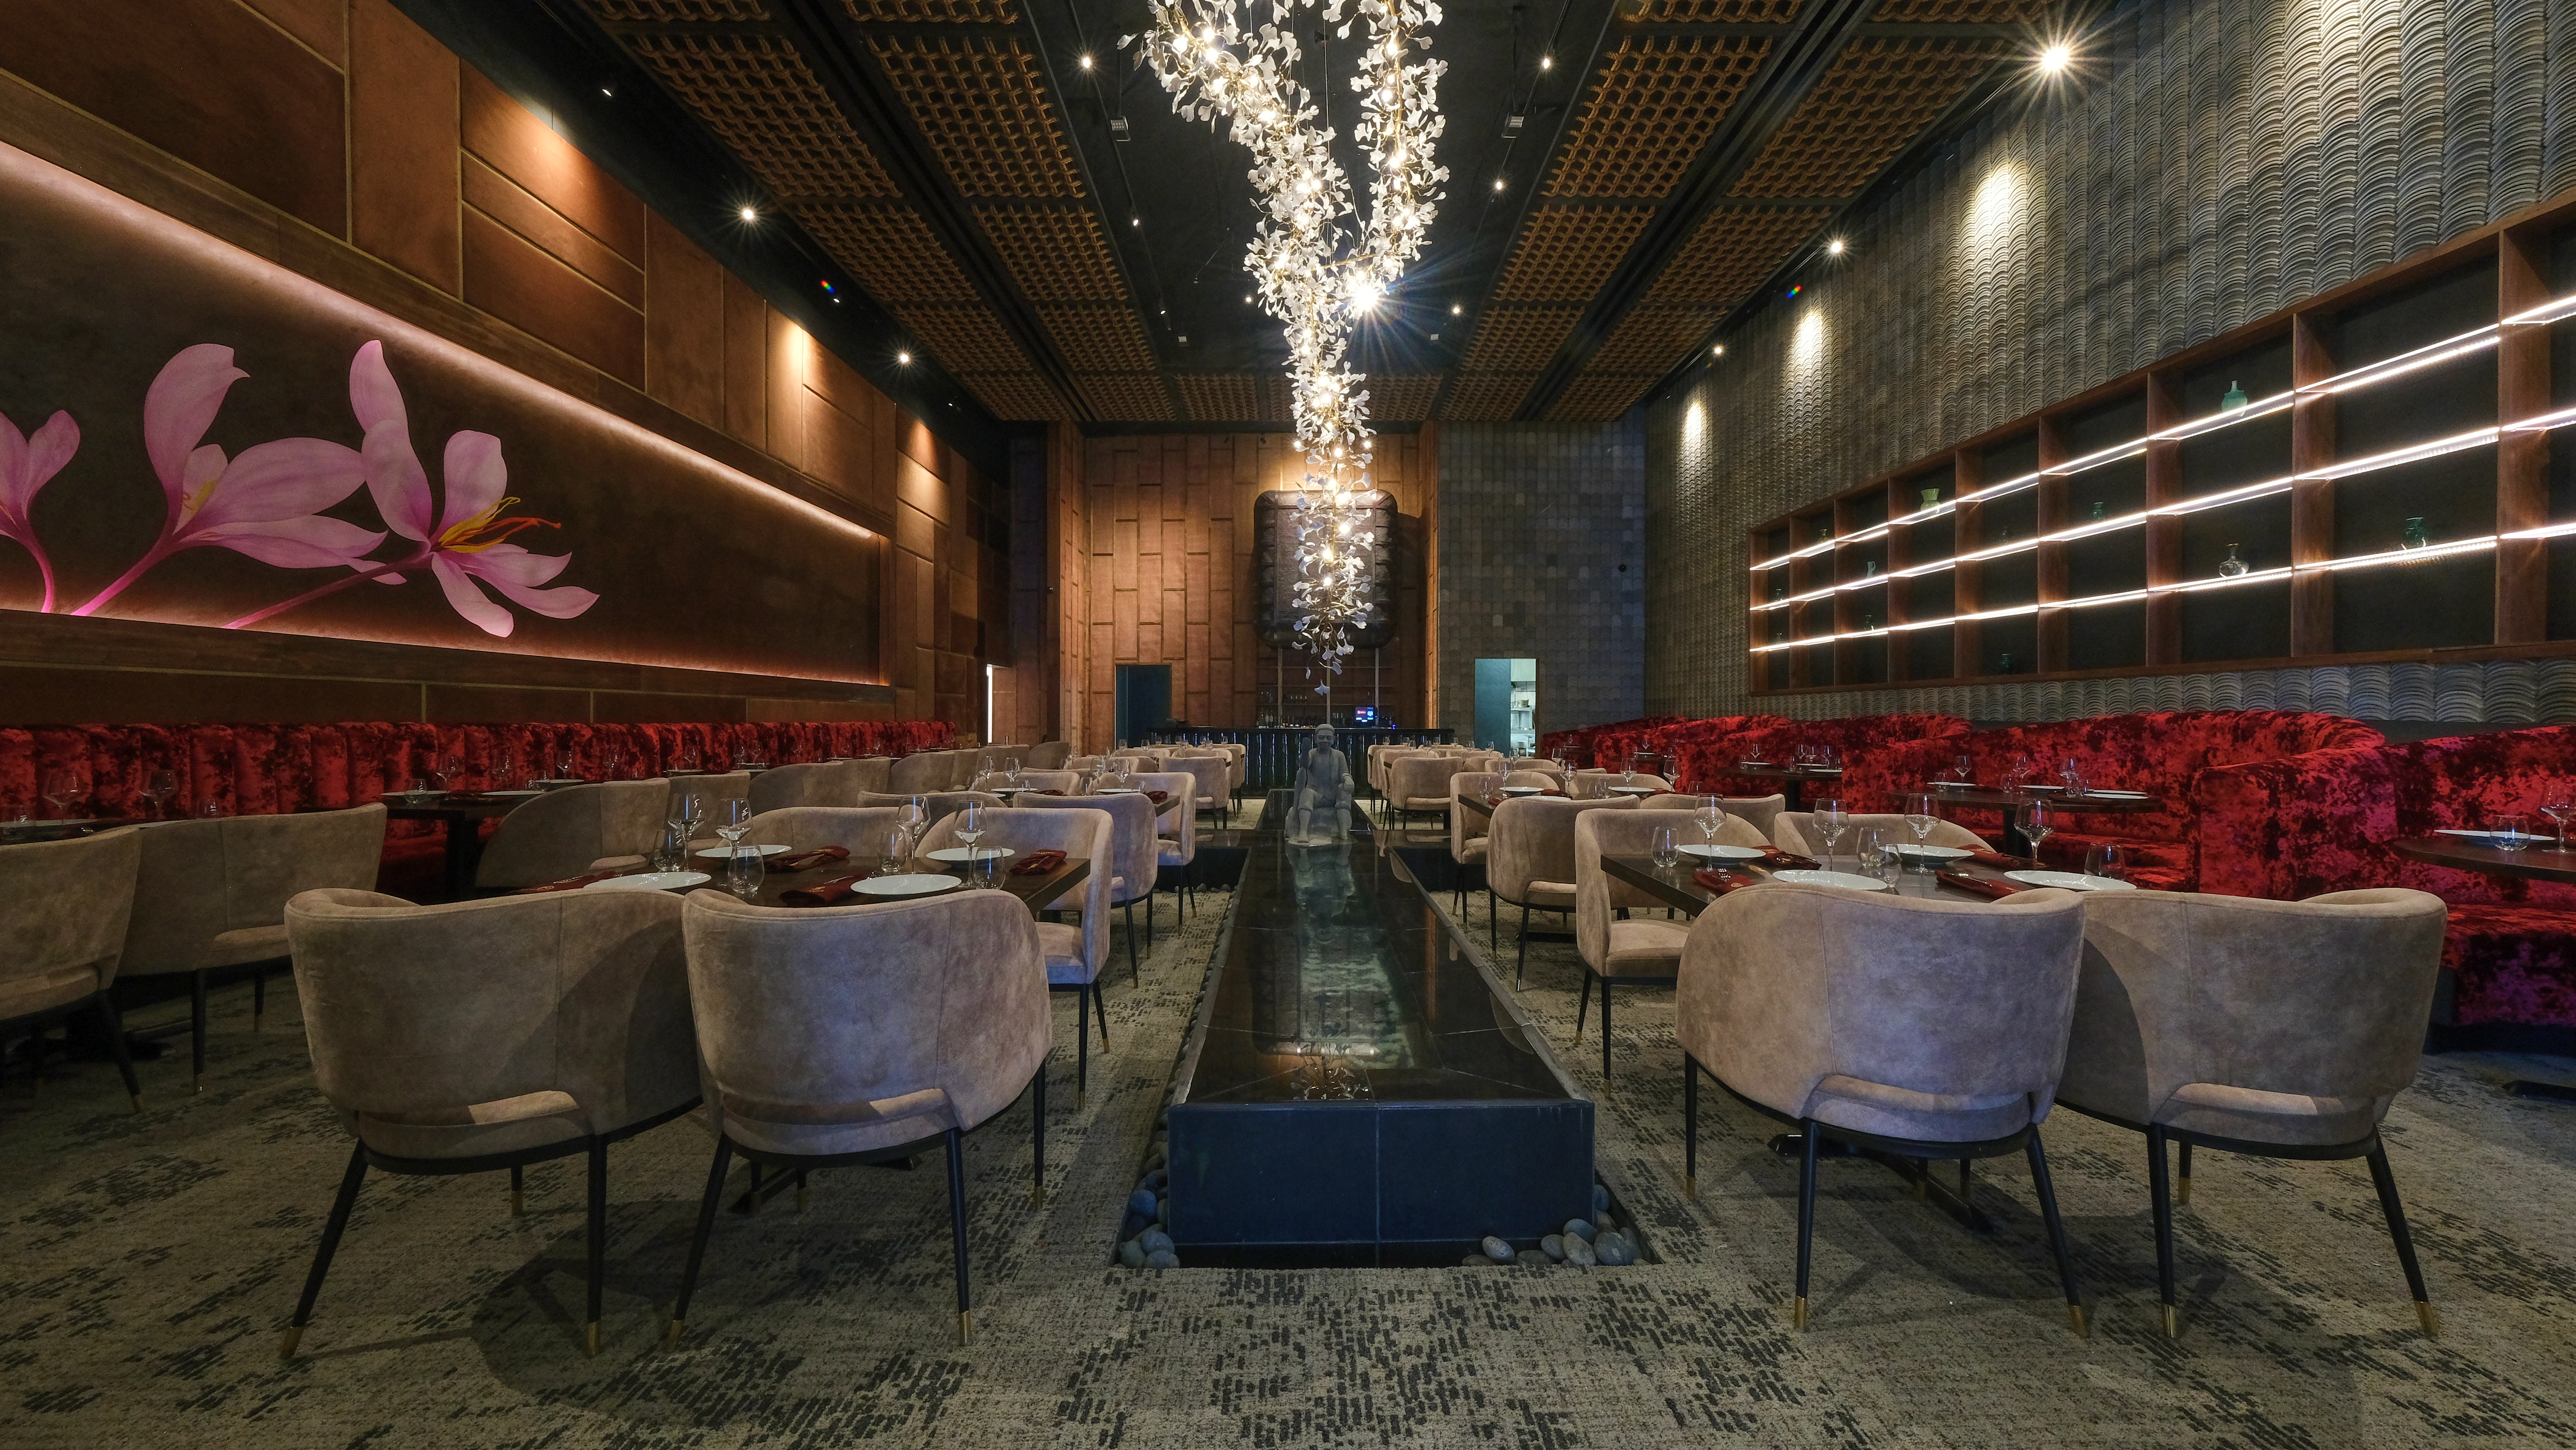 A dark restaurant interior with a white flower light overhead, chairs on the side, and a fountain in the center